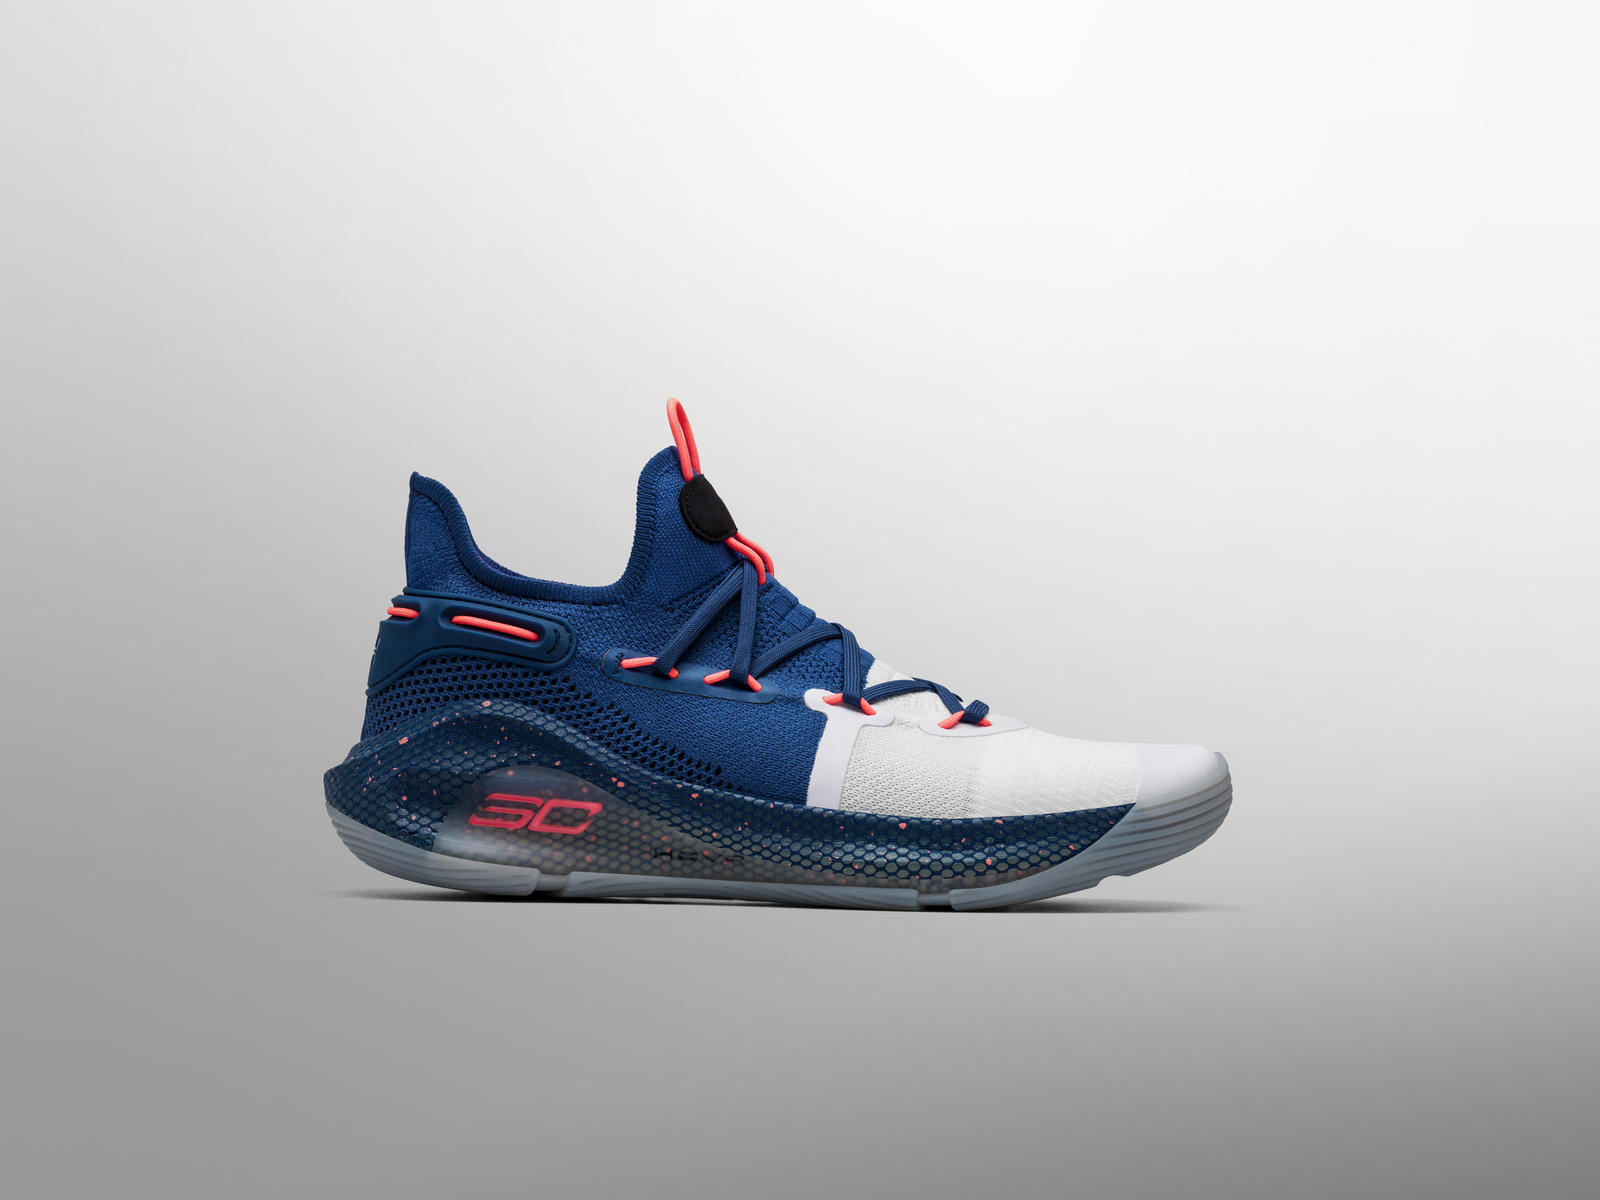 Curry 6 Splash Party Colorway